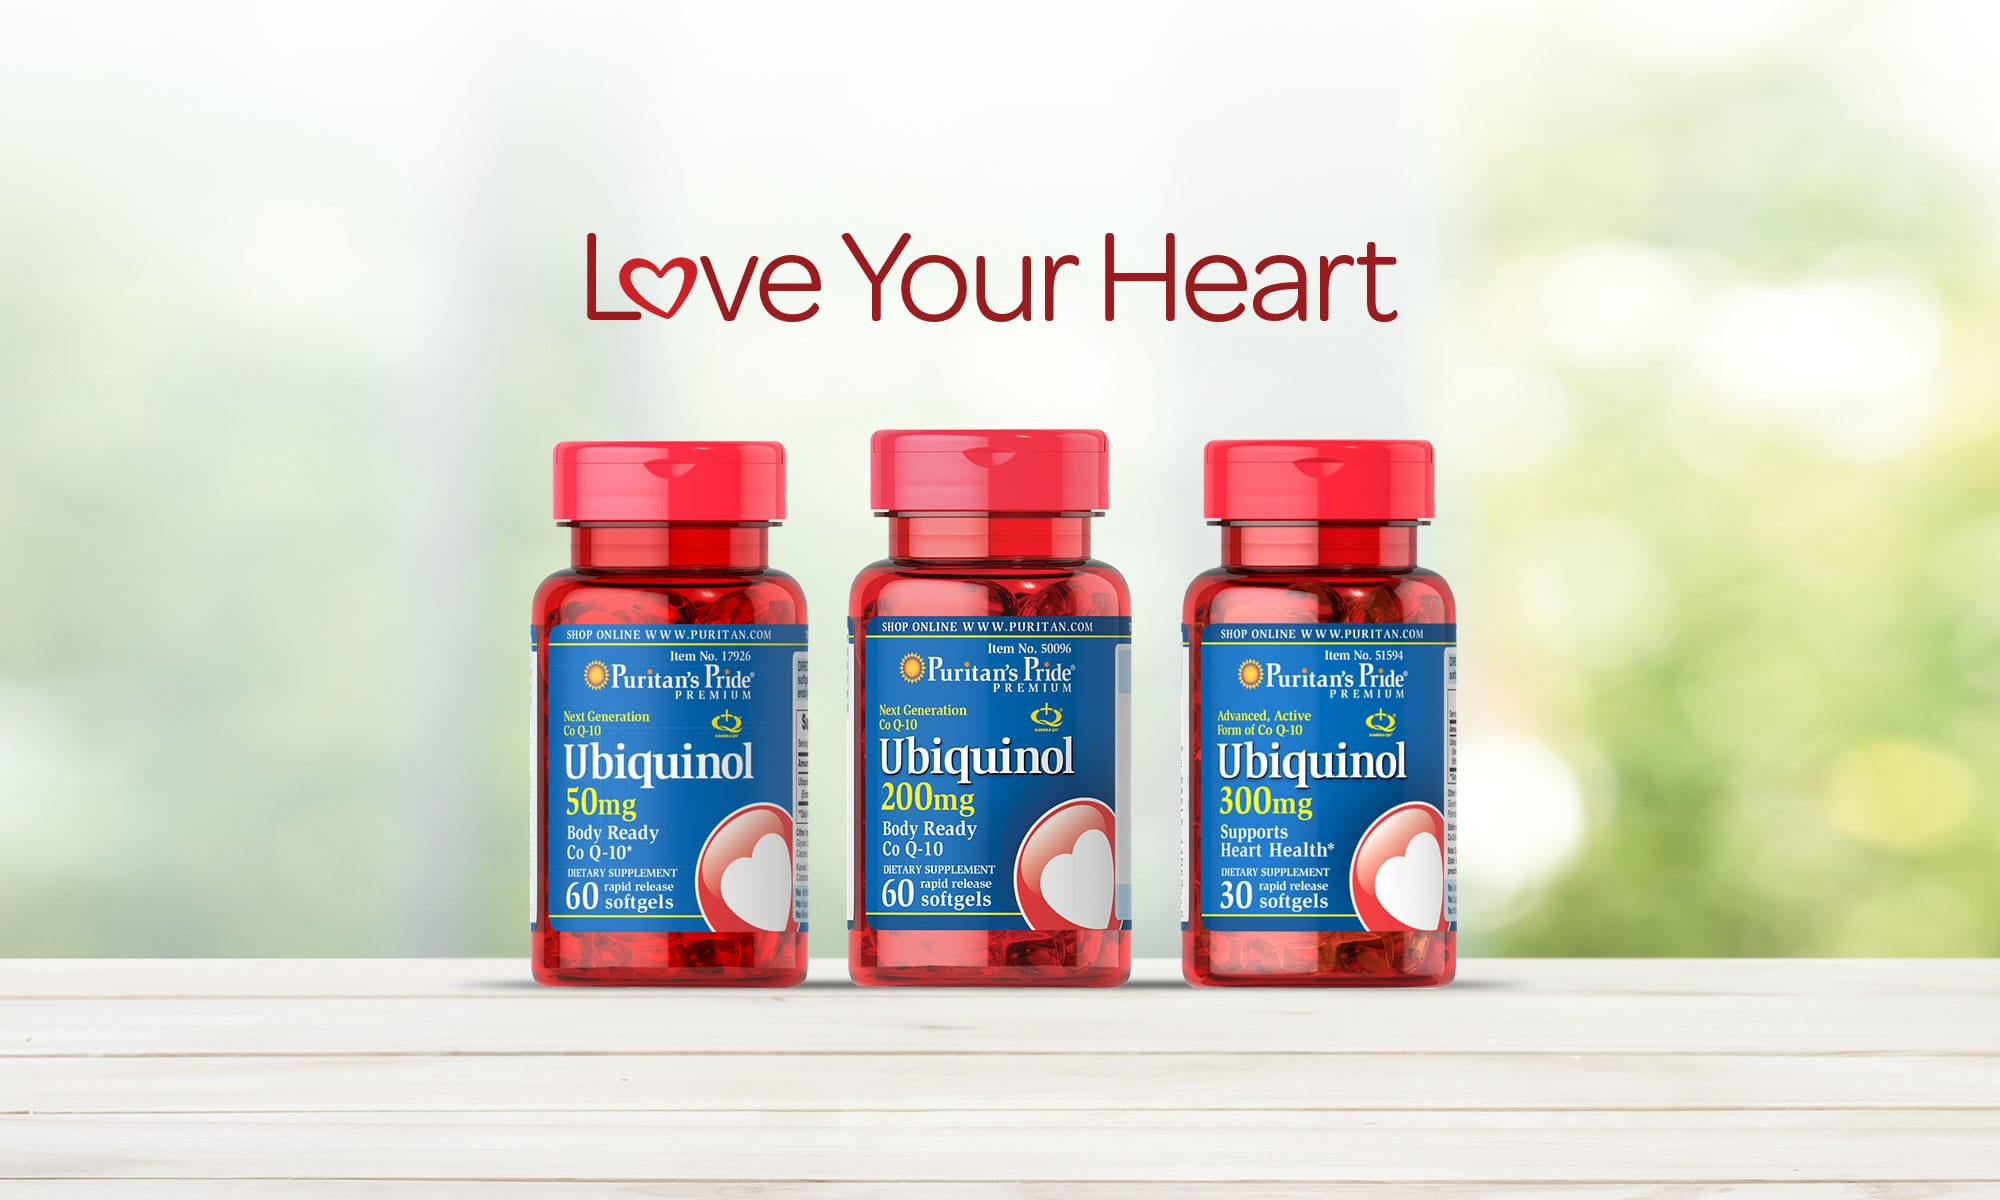 Love Your Heart. Shop All Uiquinol